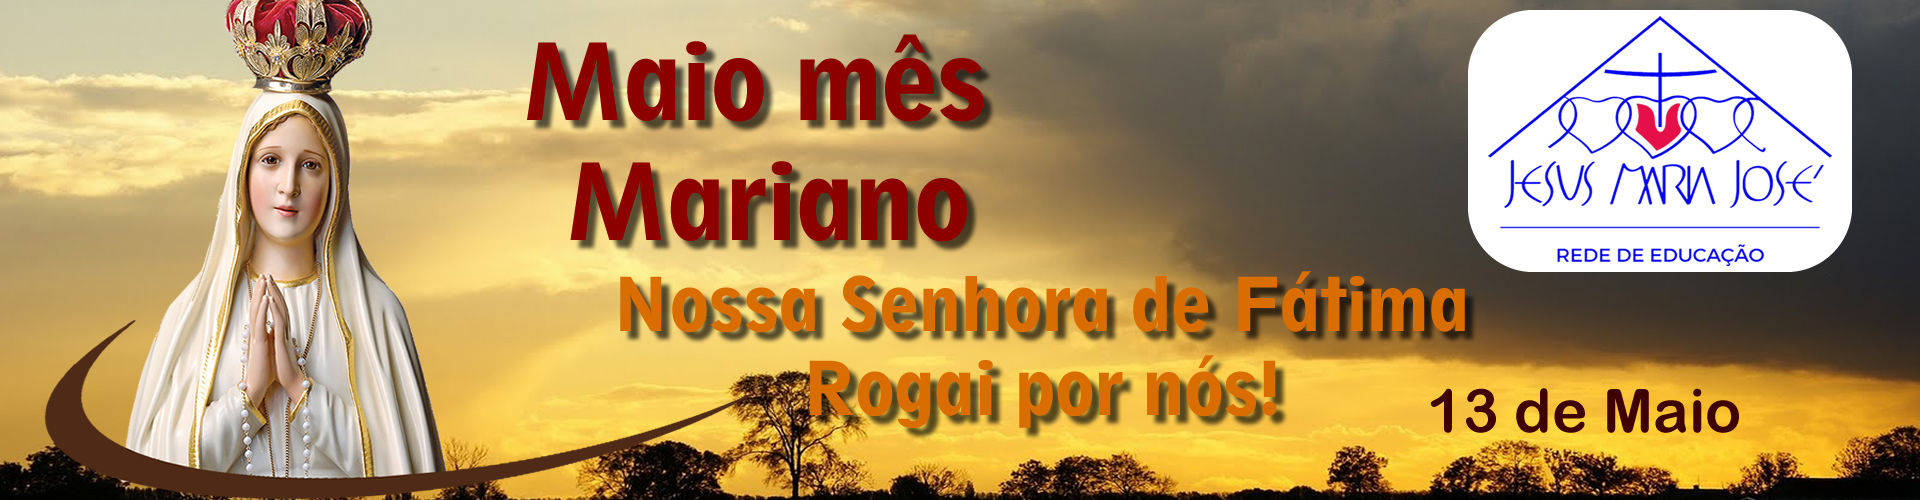 Banner Mariano